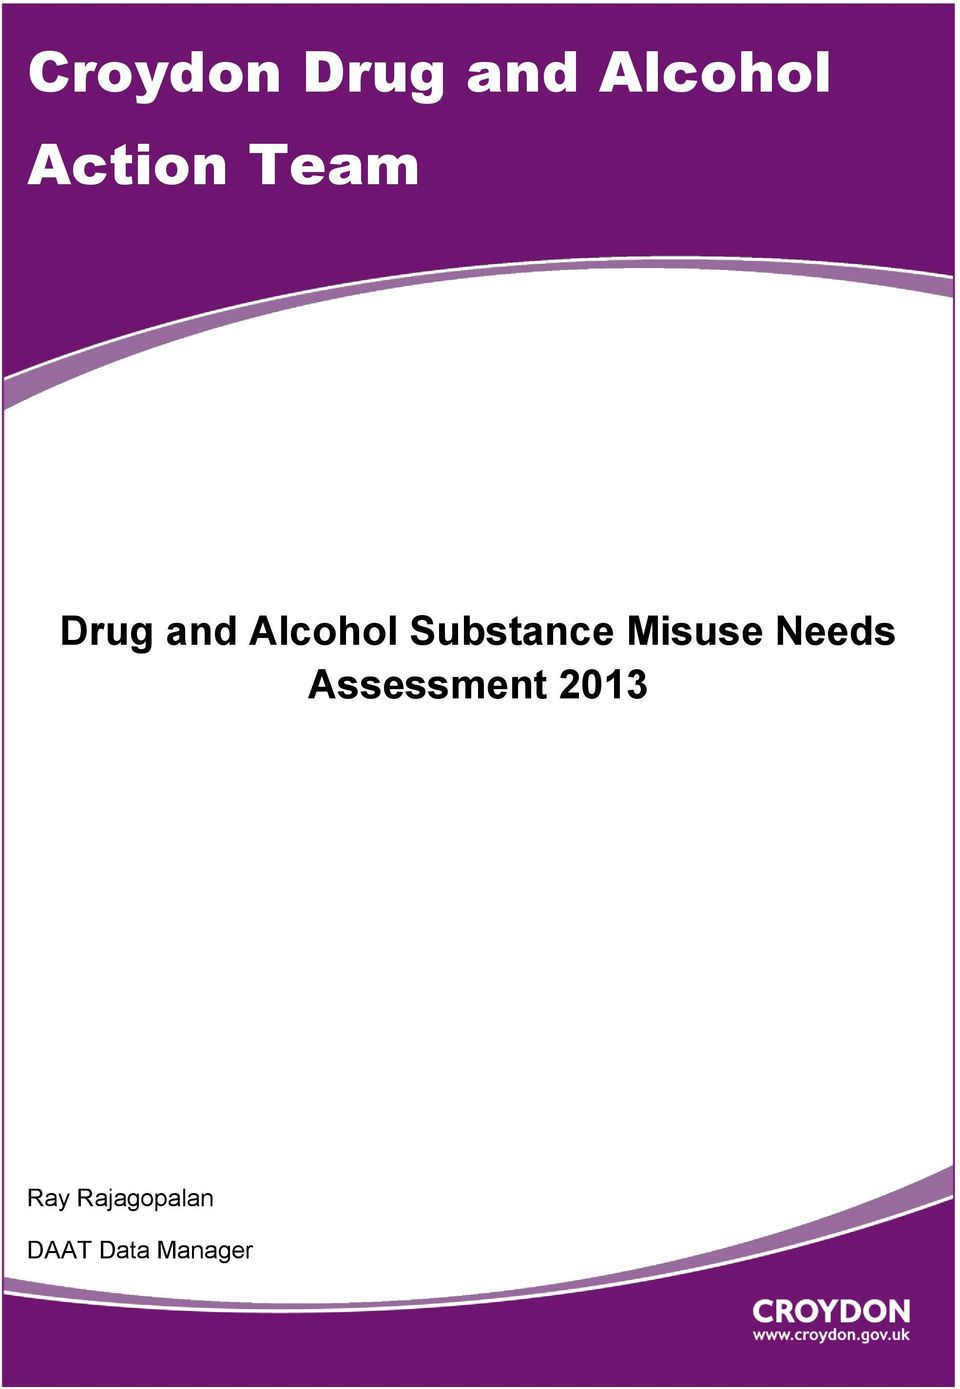 Misuse Needs Assessment 2013